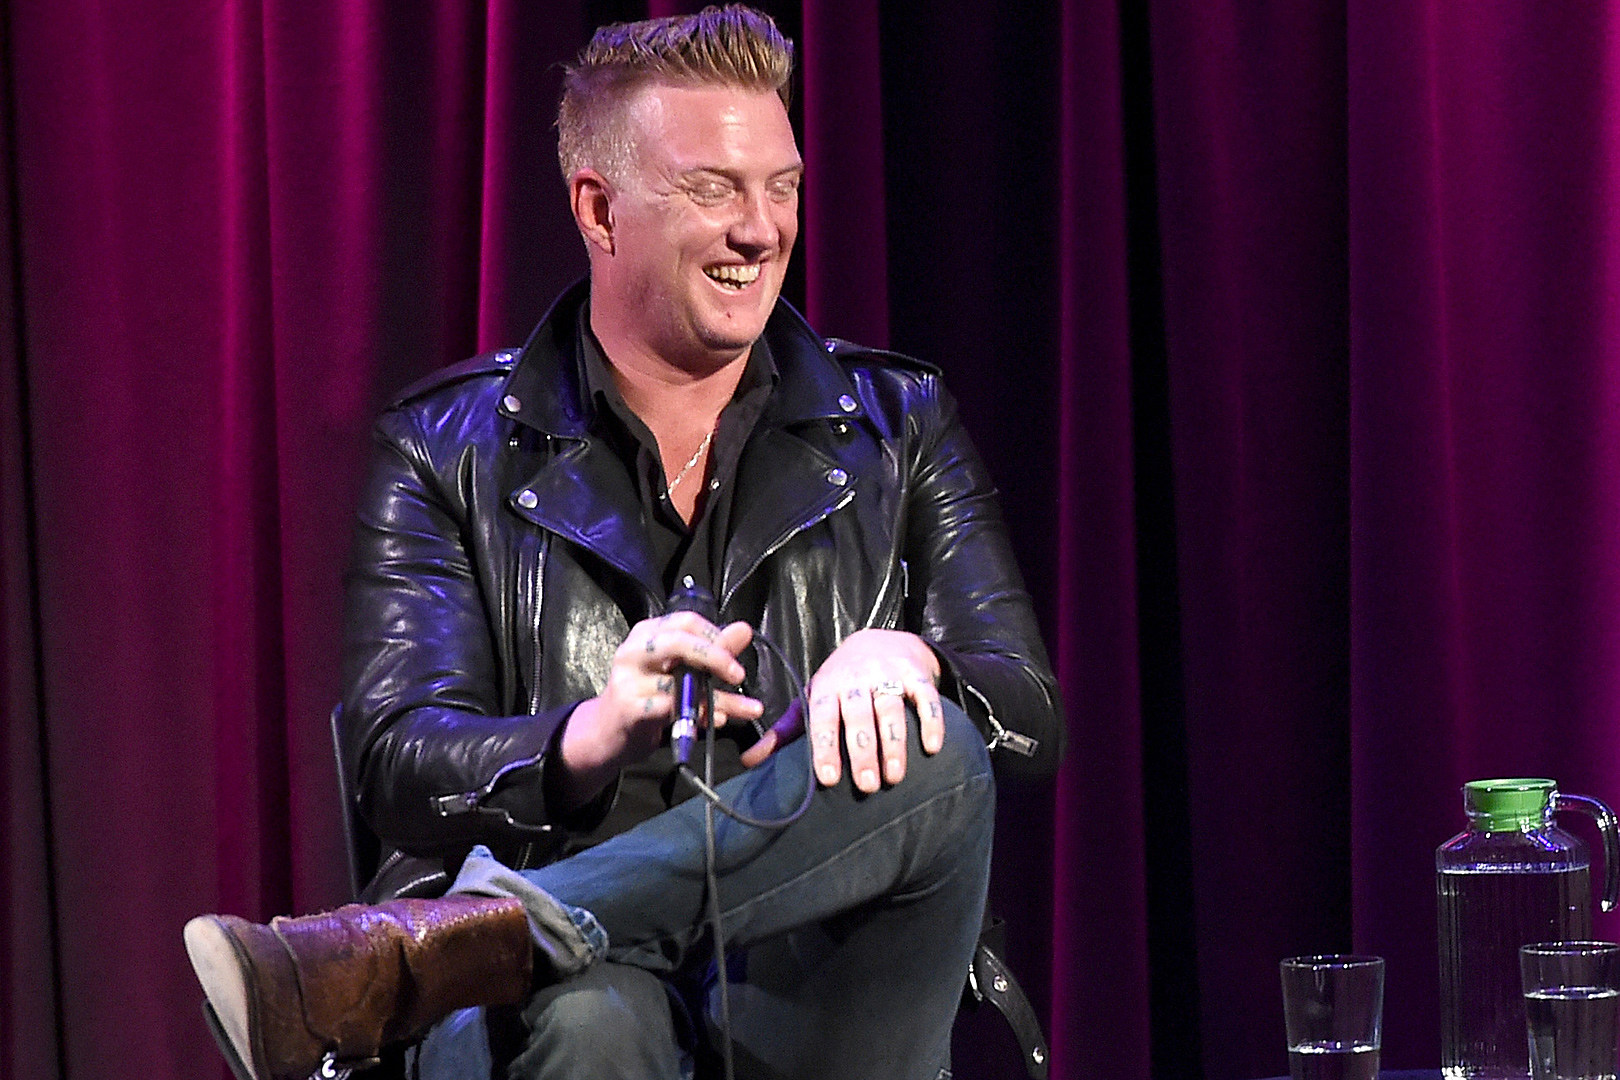 Queens of the Stone Age's Josh Homme Creates Score for Revenge Film 'In the Fade'